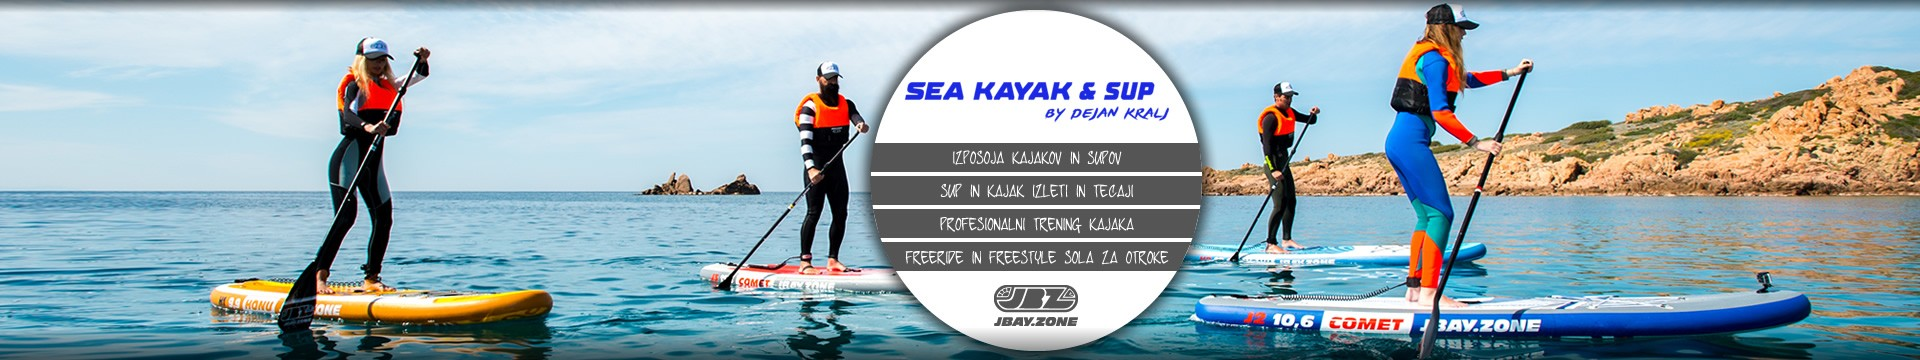 WAII SUP and Kayak